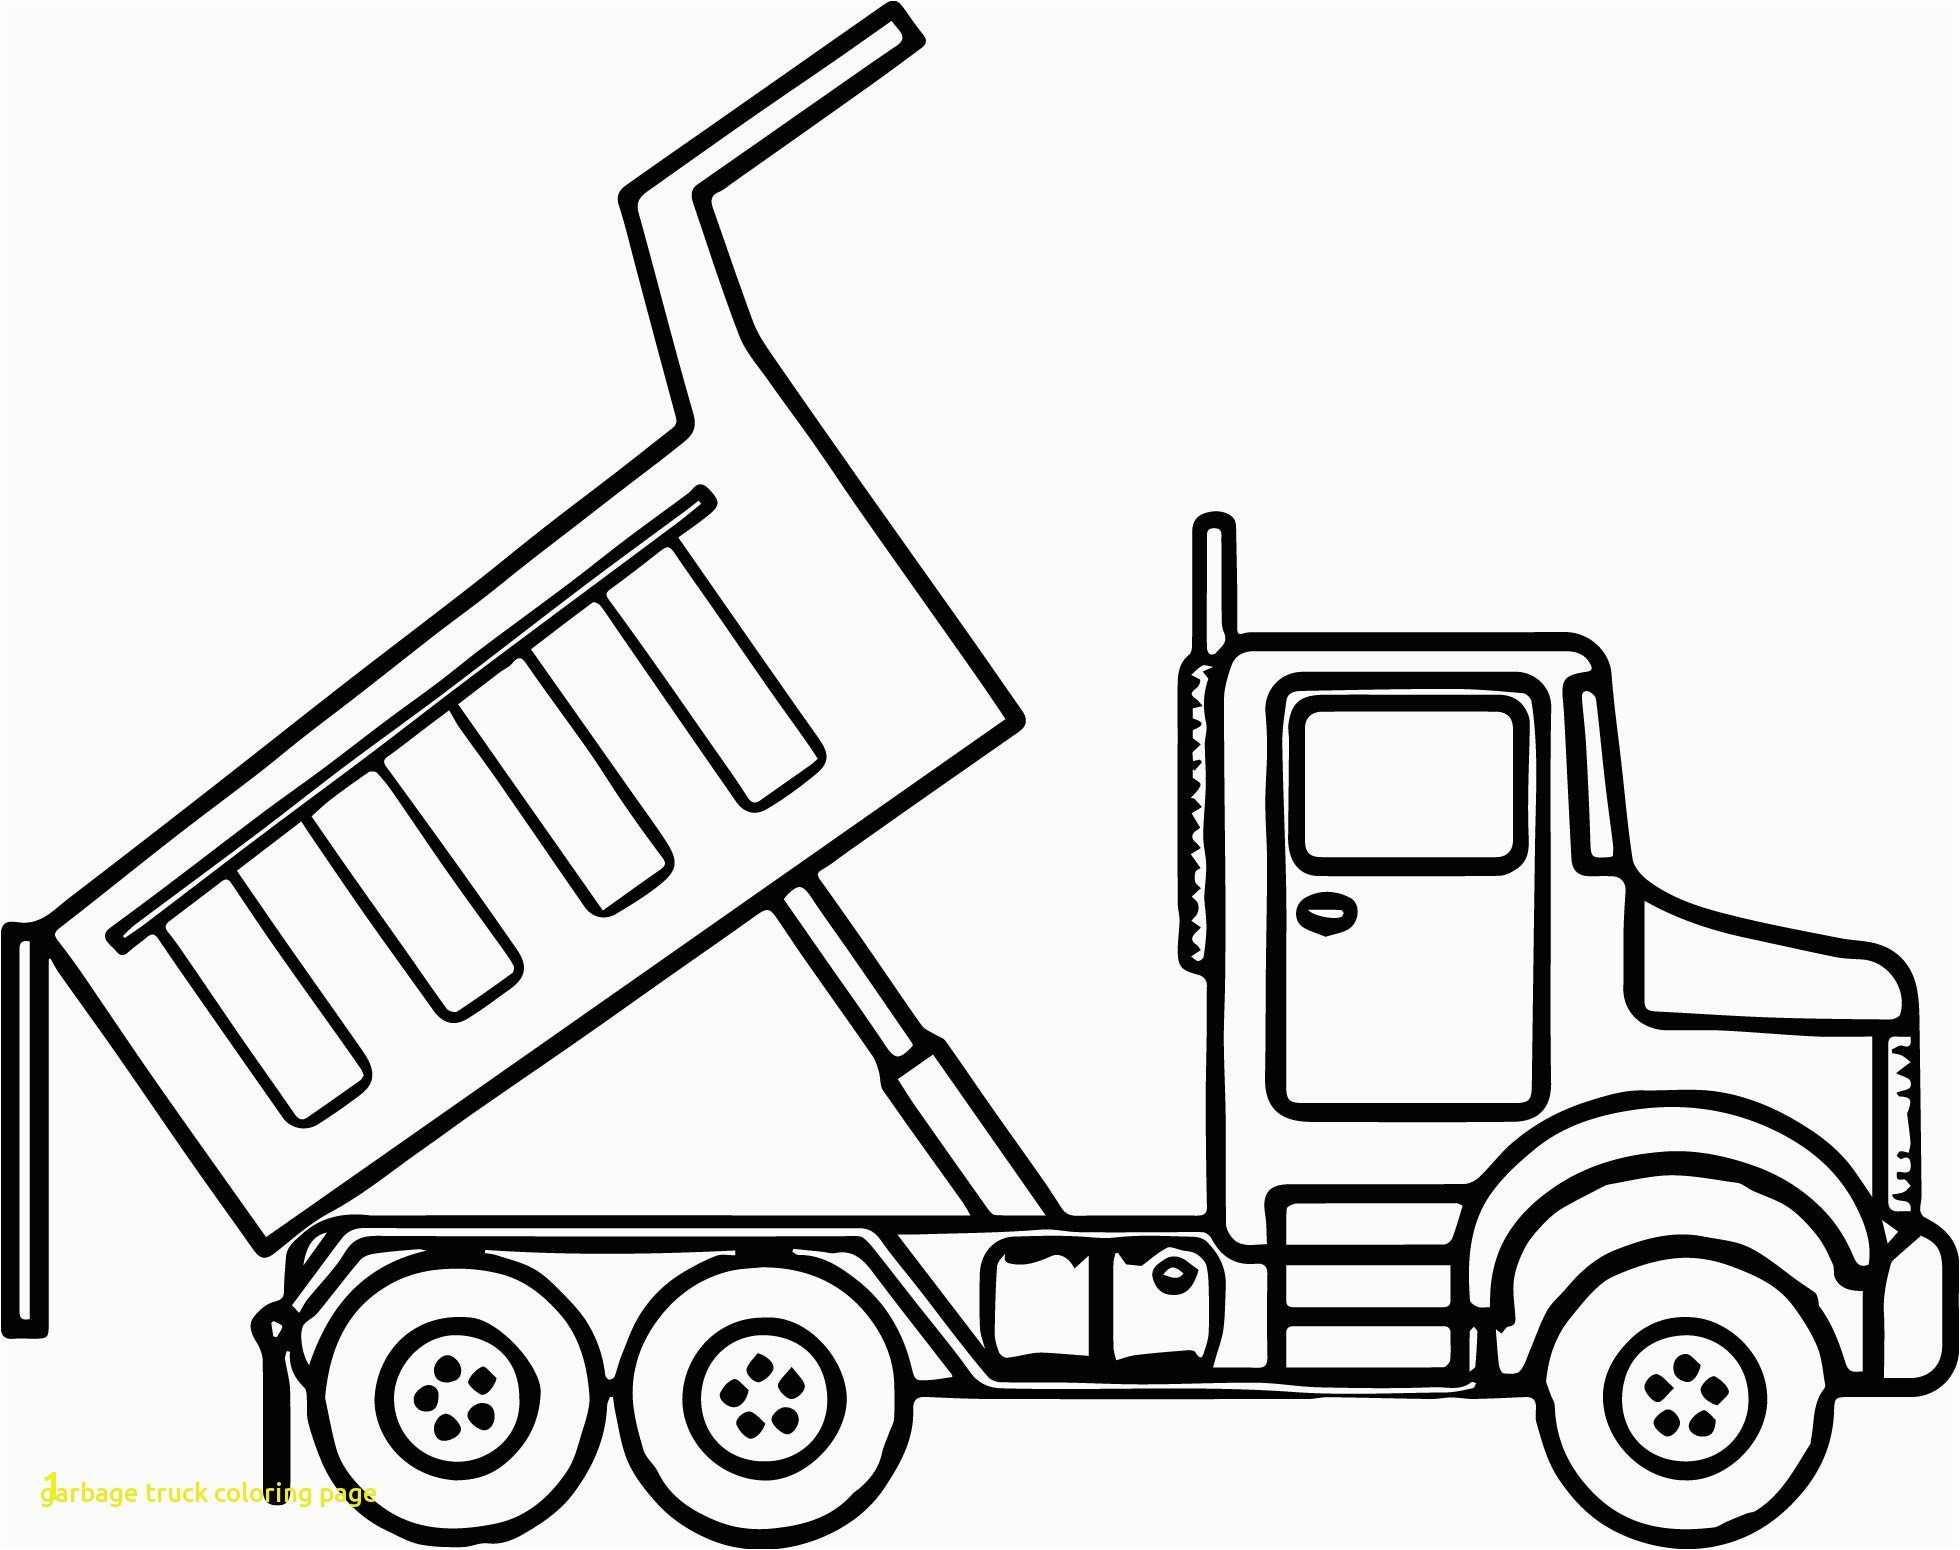 Construction Dump Truck Coloring Pages Dump Truck Coloring Pages Confidential Mail Truck Coloring Page Dump